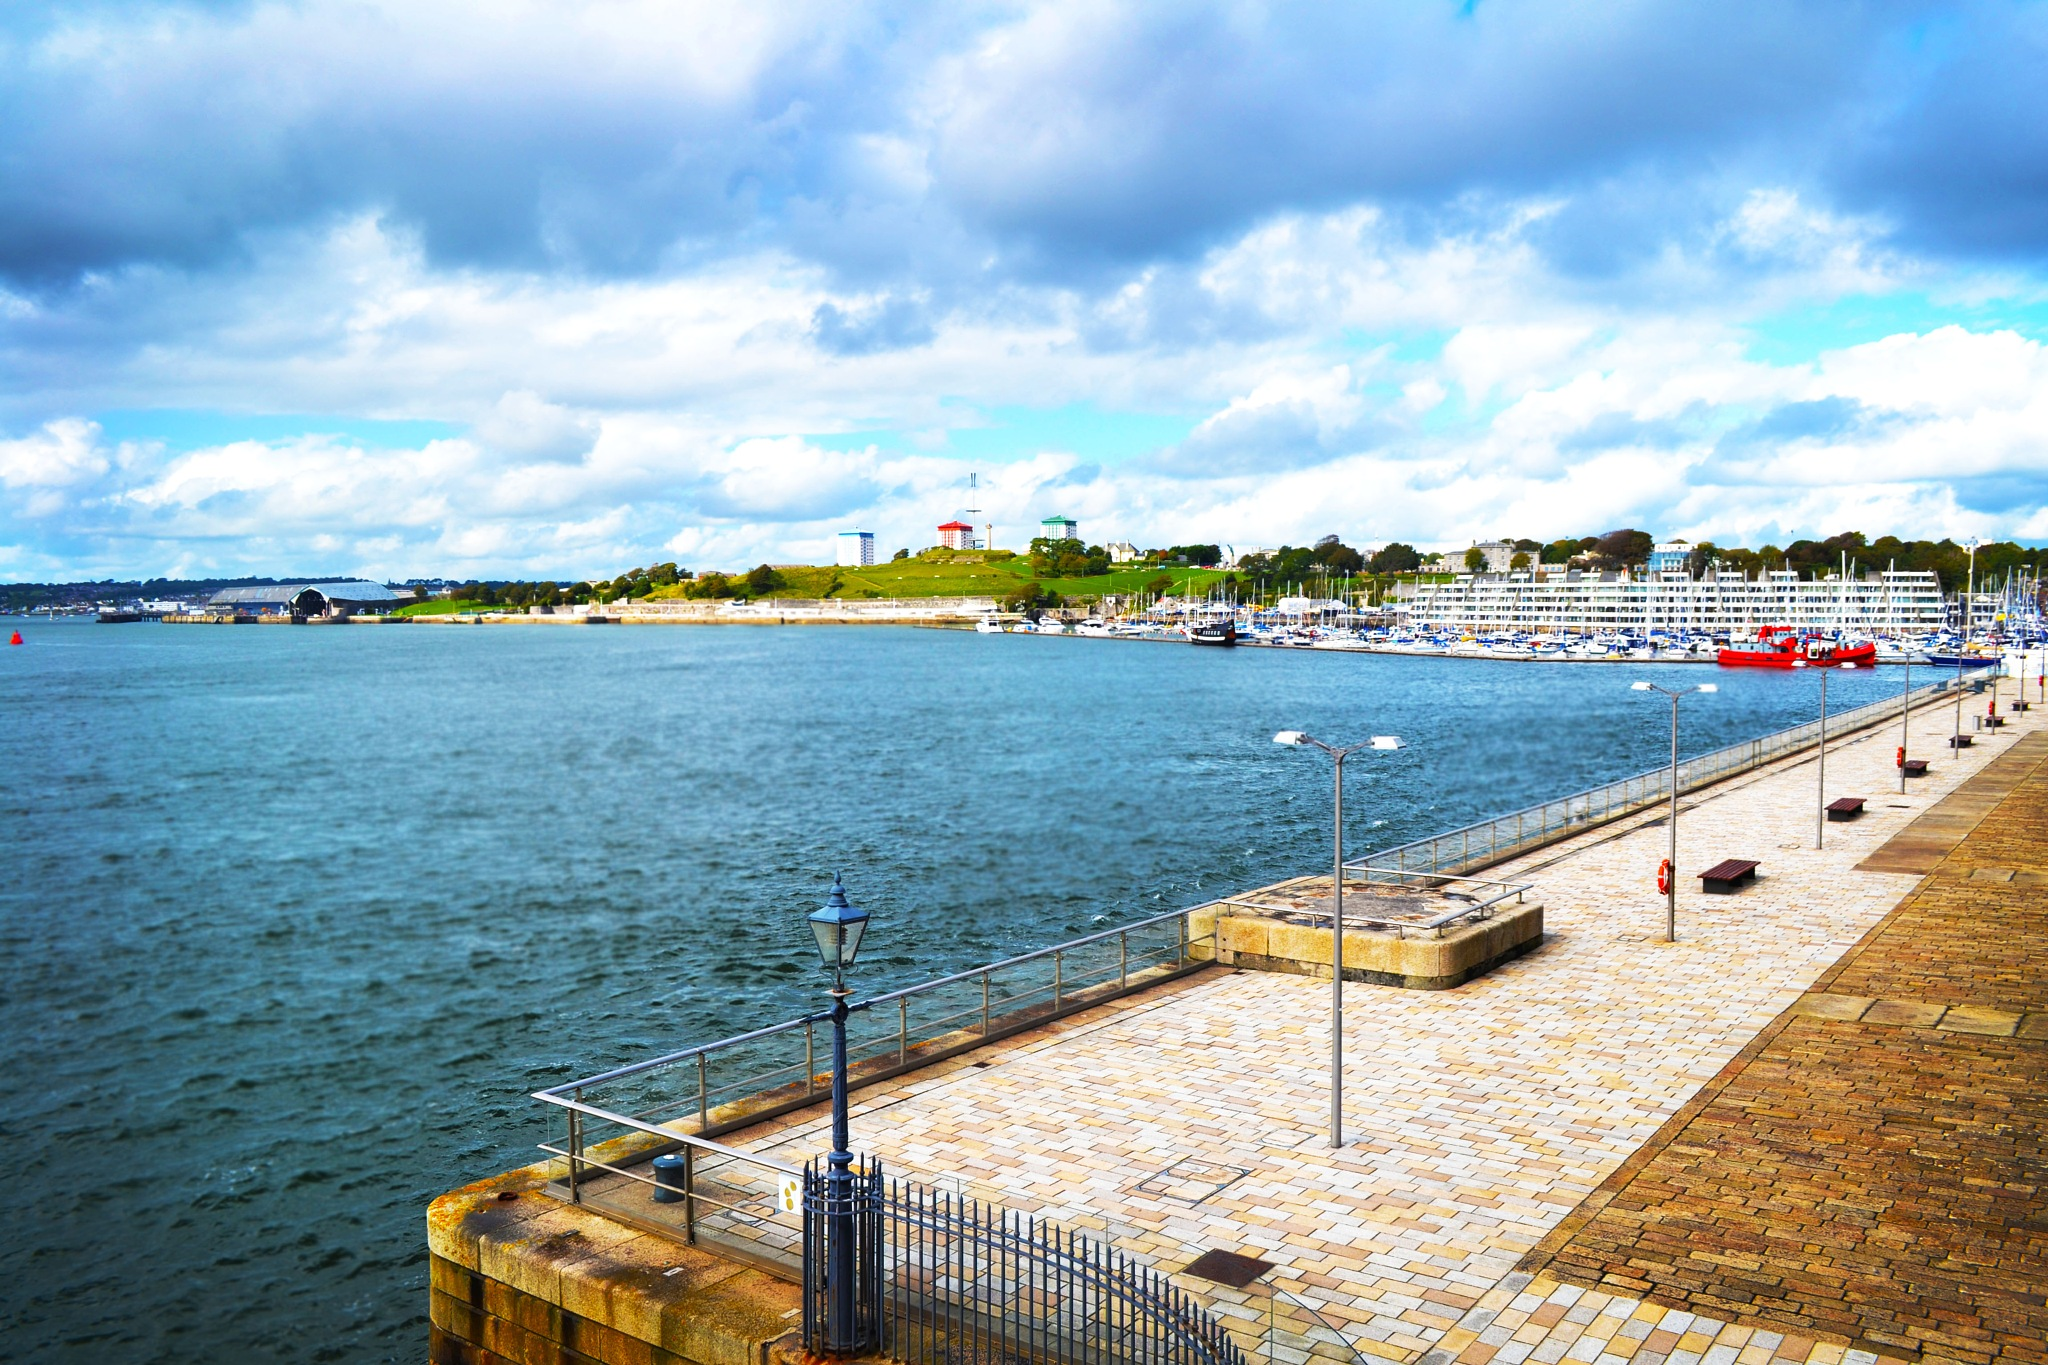 Royal William Yard by MollyGreenPhotography